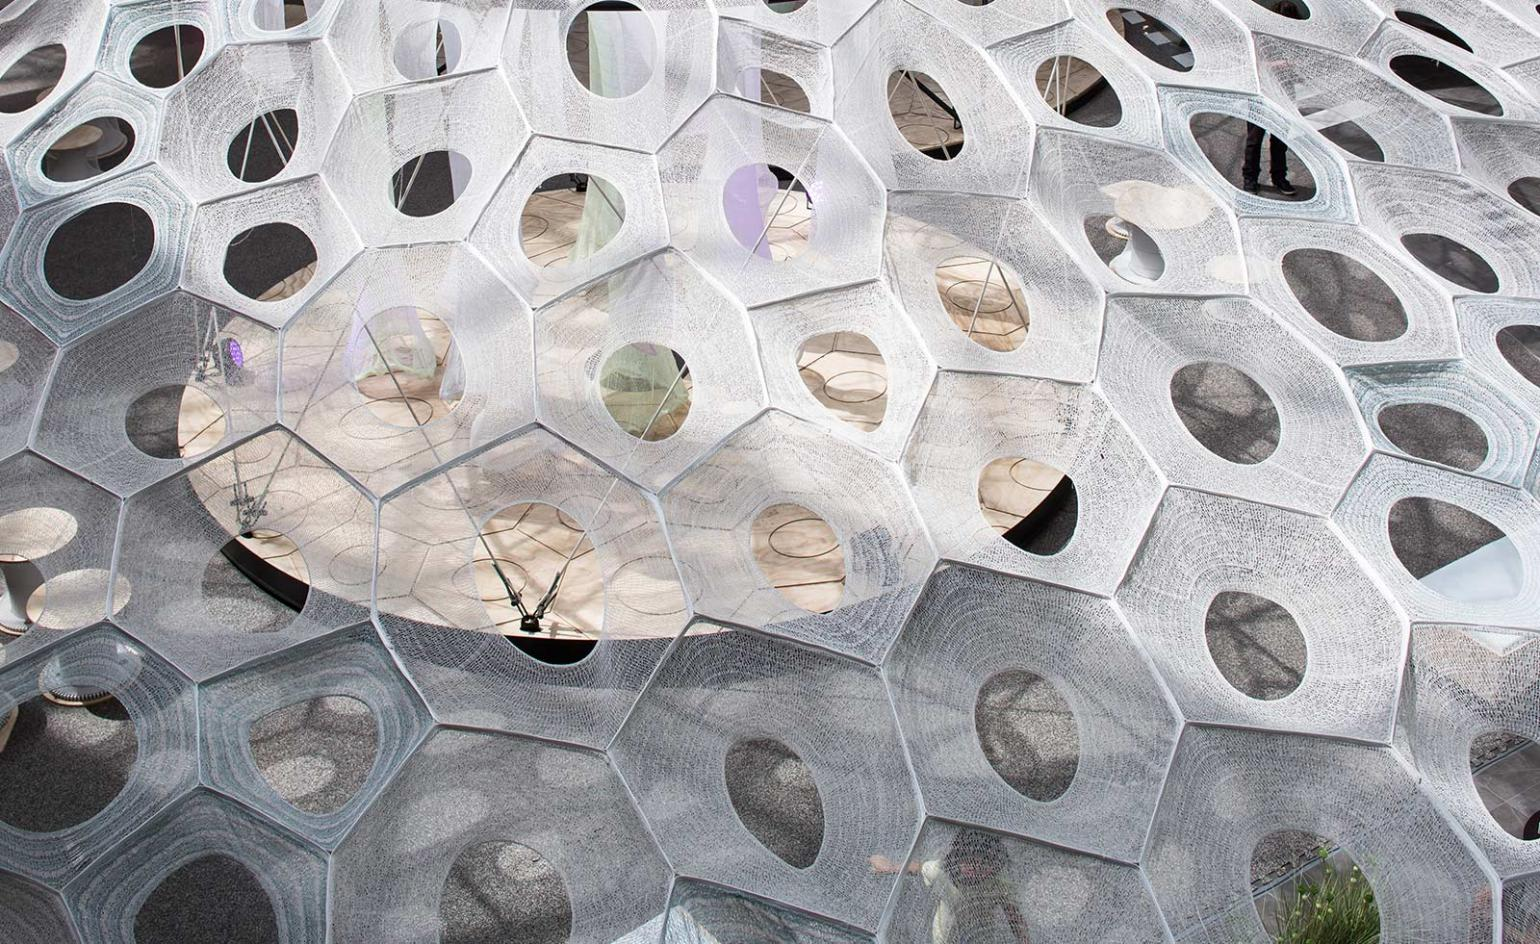 Jenny Sabin and Constructo team up for immersive installation in Chile